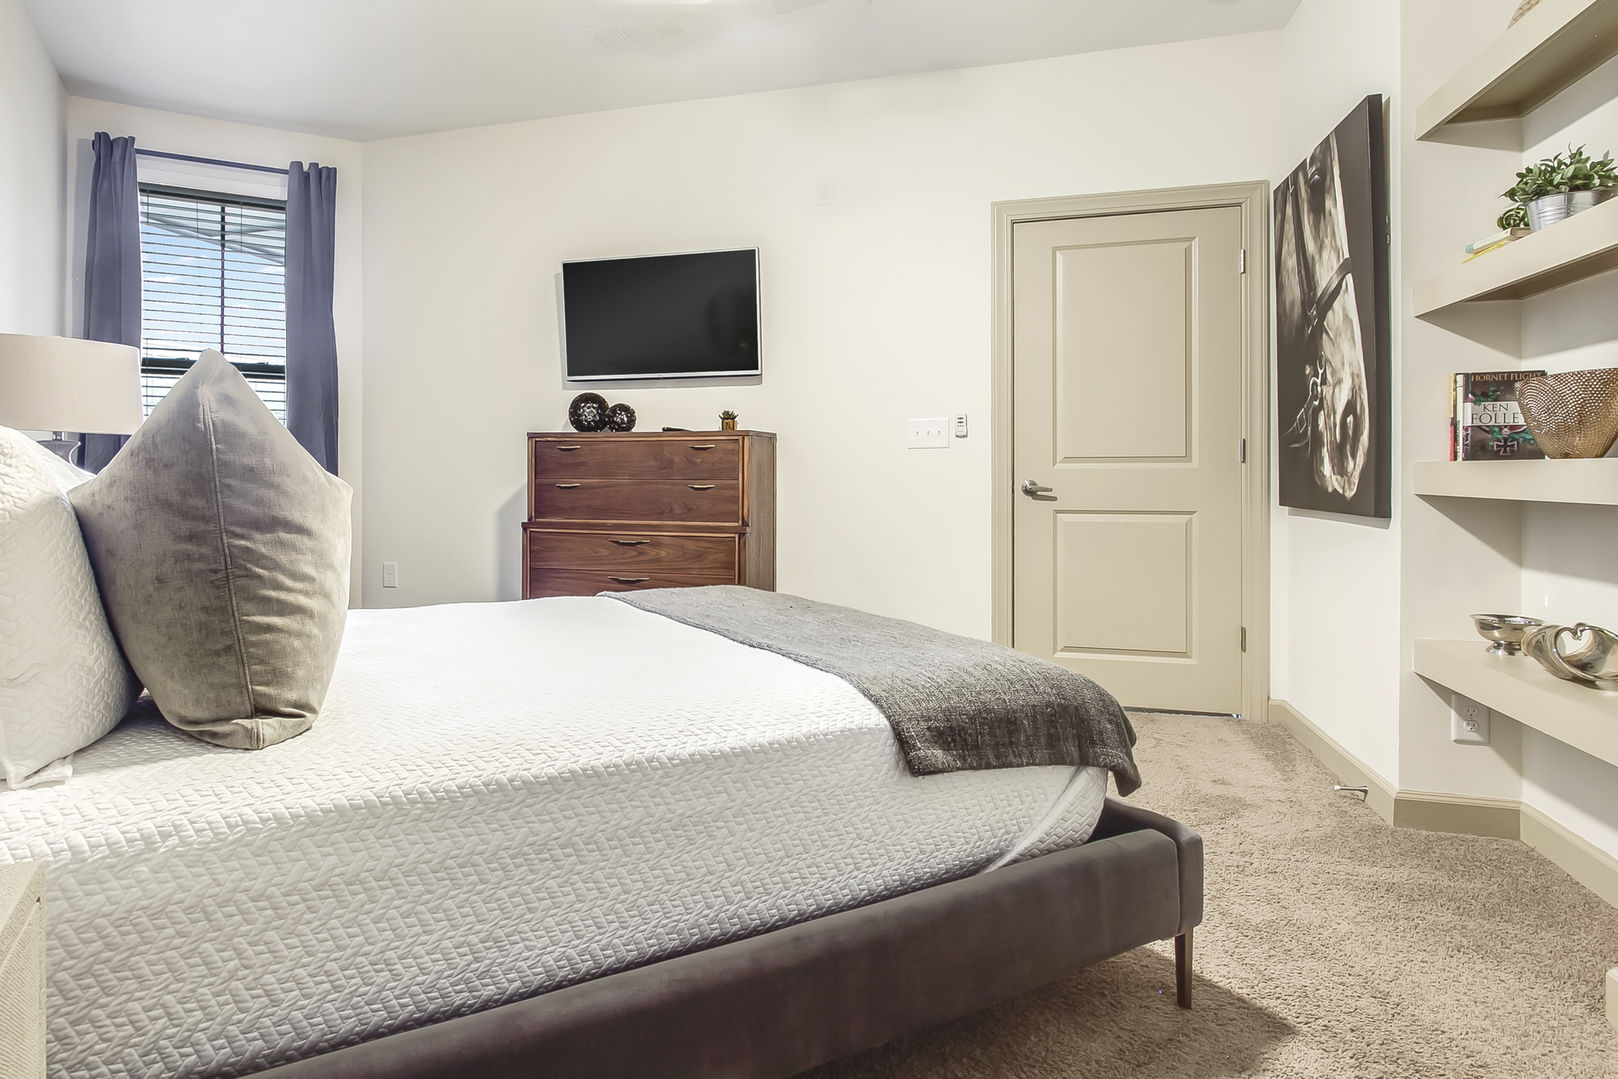 Bedroom with wall mounted TV